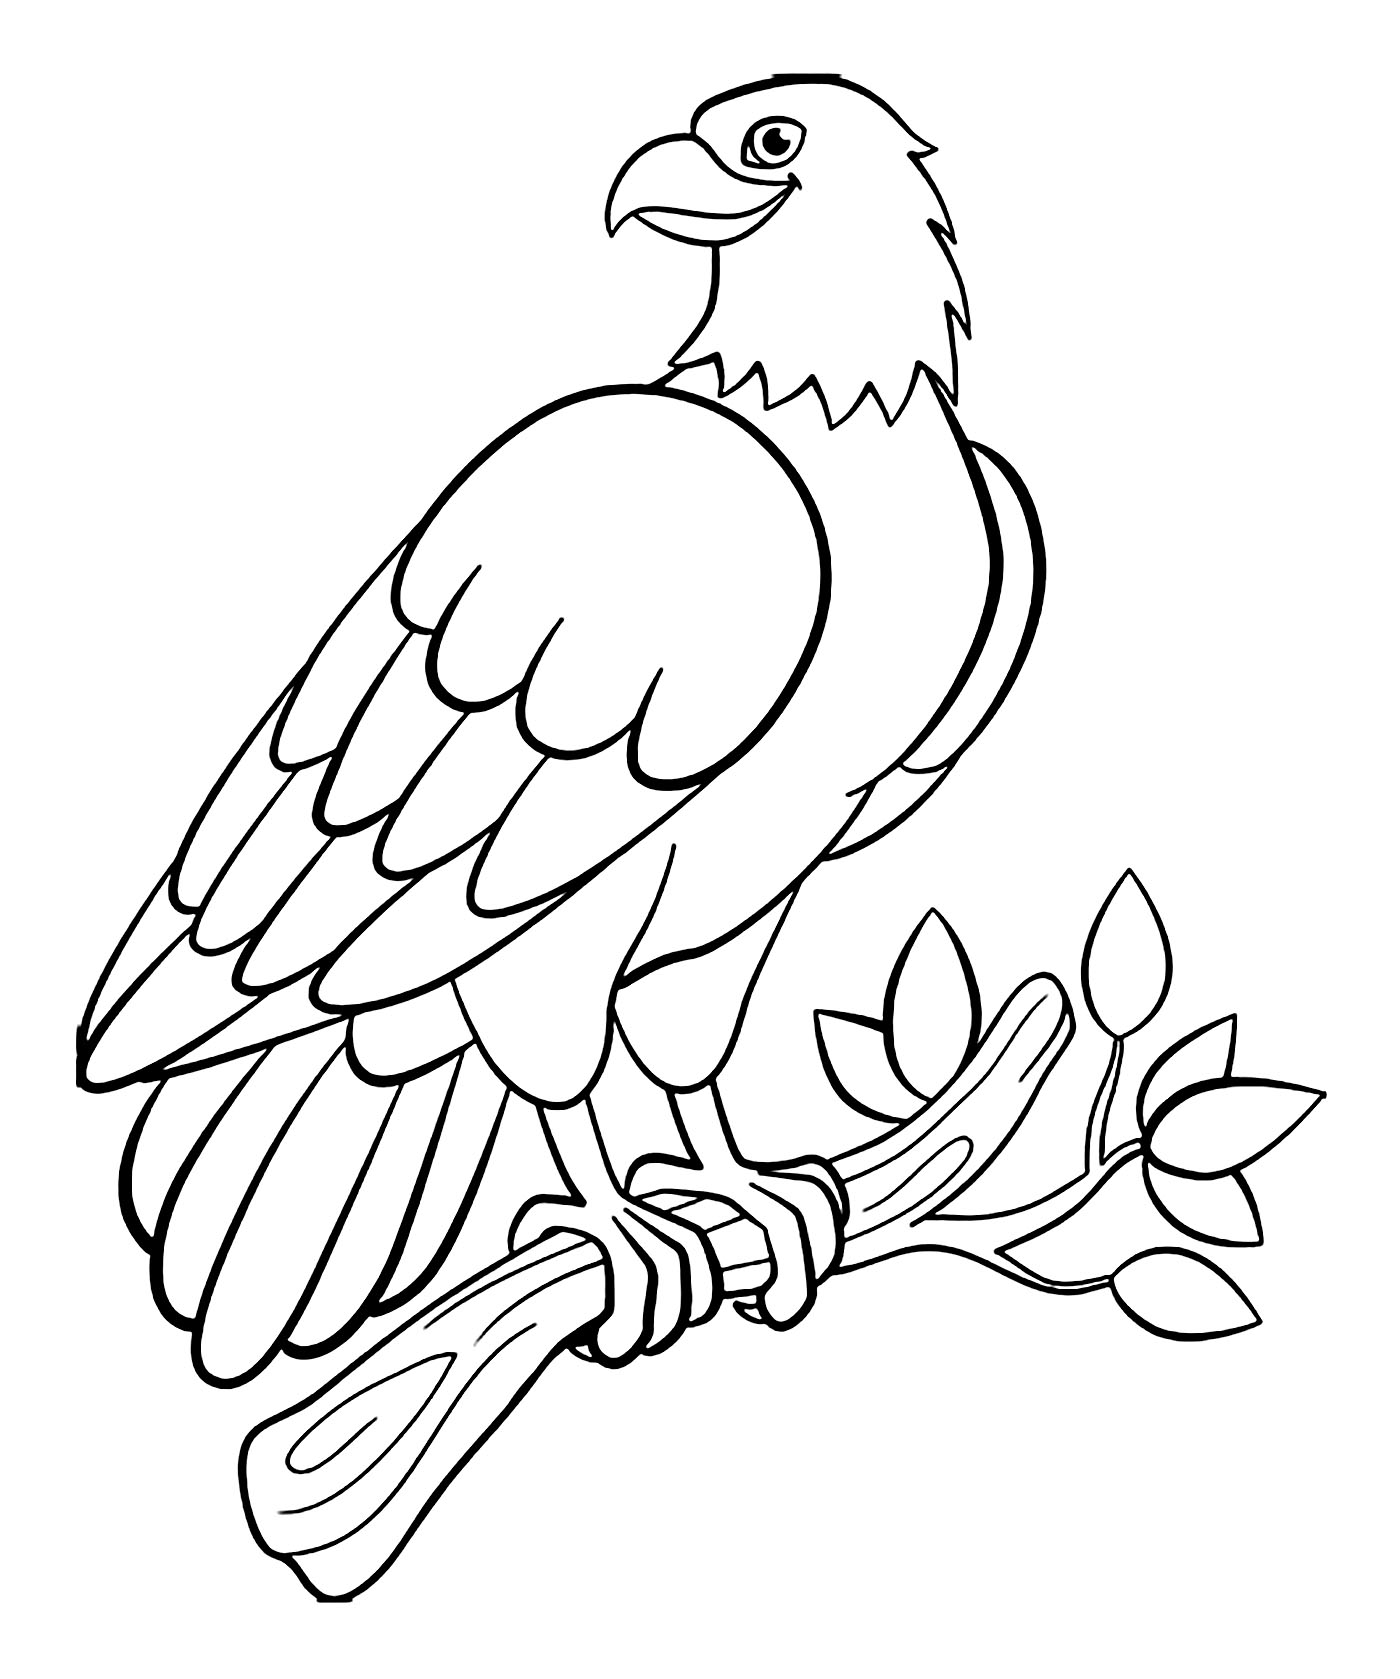 bird colouring pages for kids birds for kids birds kids coloring pages colouring kids for bird pages